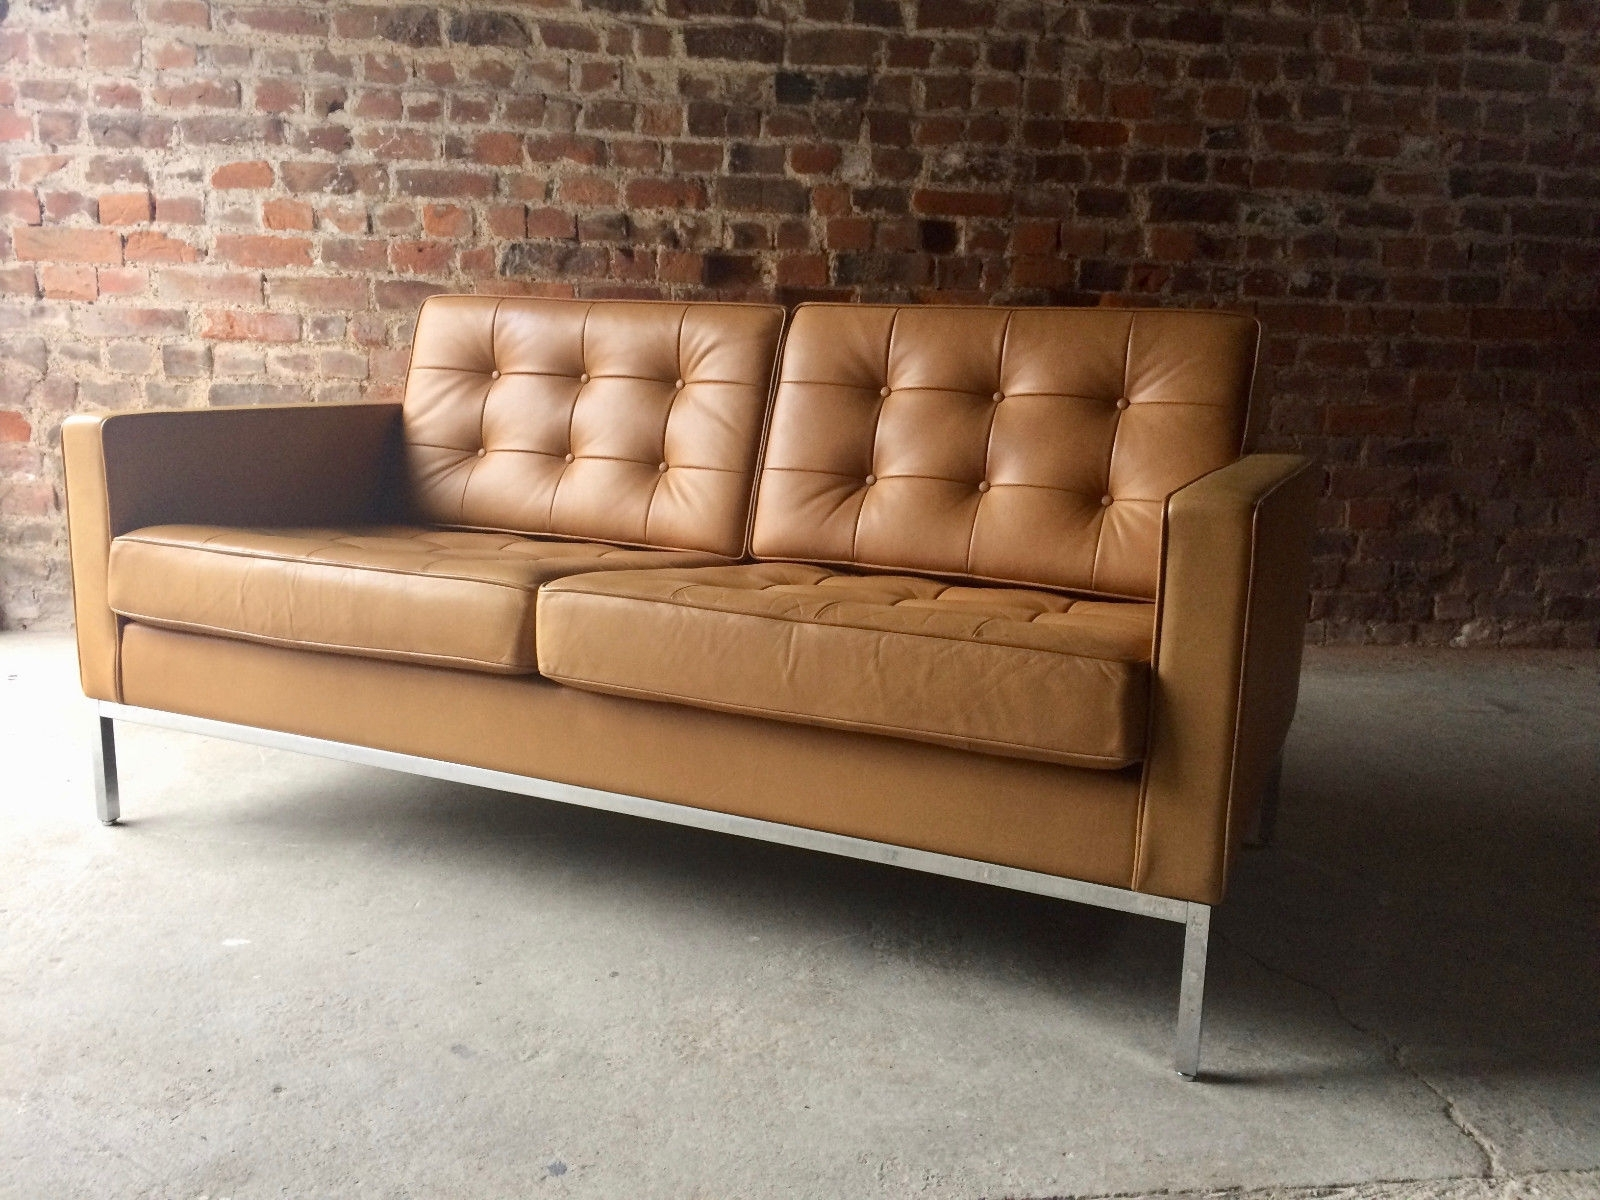 Fashionable Florence Leather Sofas In Vintage 2 Seater Leather Sofaflorence Knoll For Knoll For Sale (View 6 of 20)